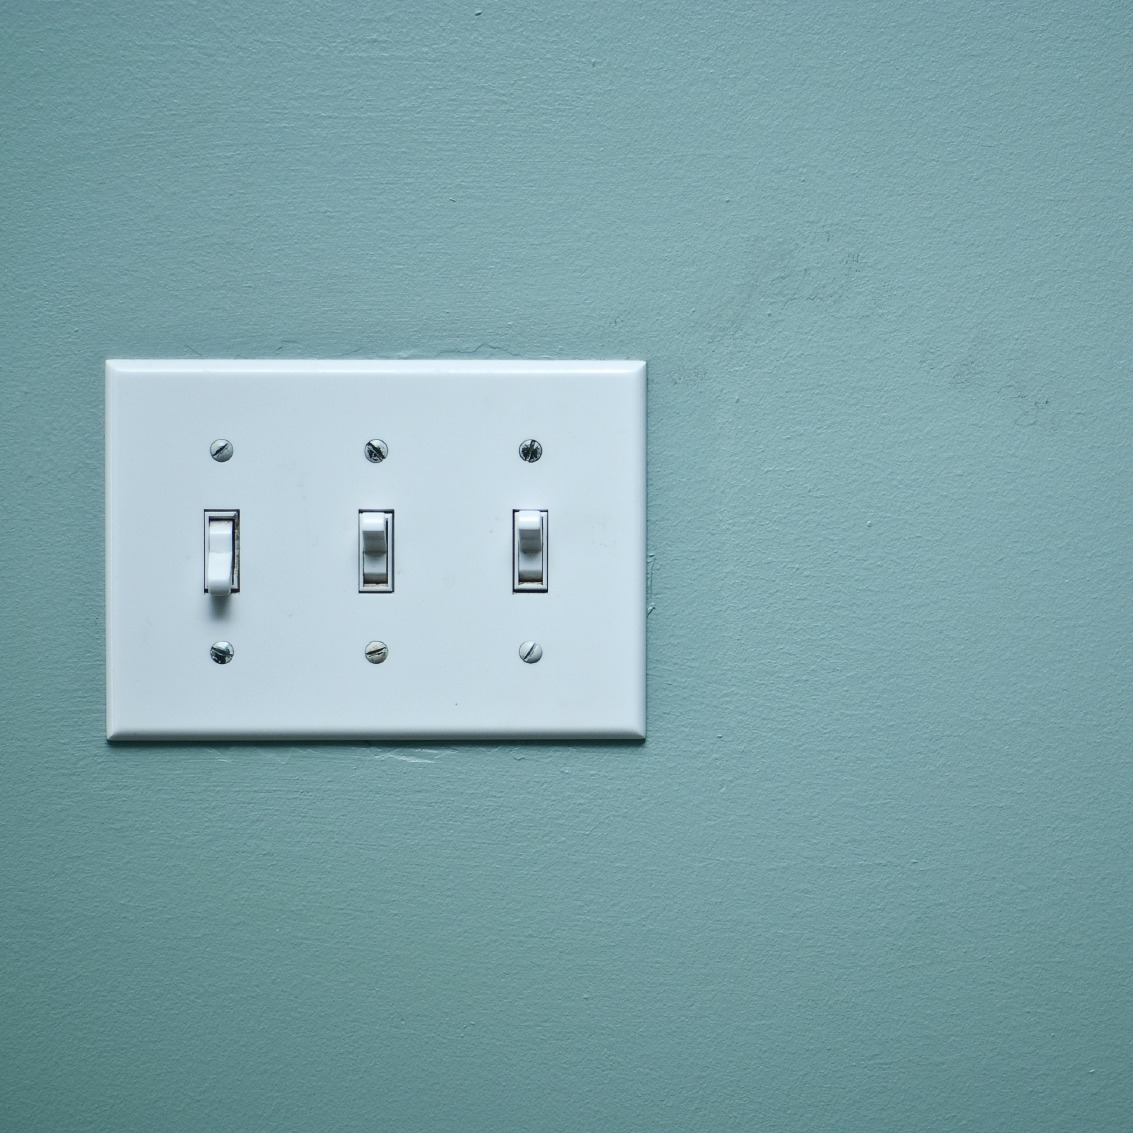 How Lighting Affects Productivity Mood Power Window Switch In The Raise Or Up Position